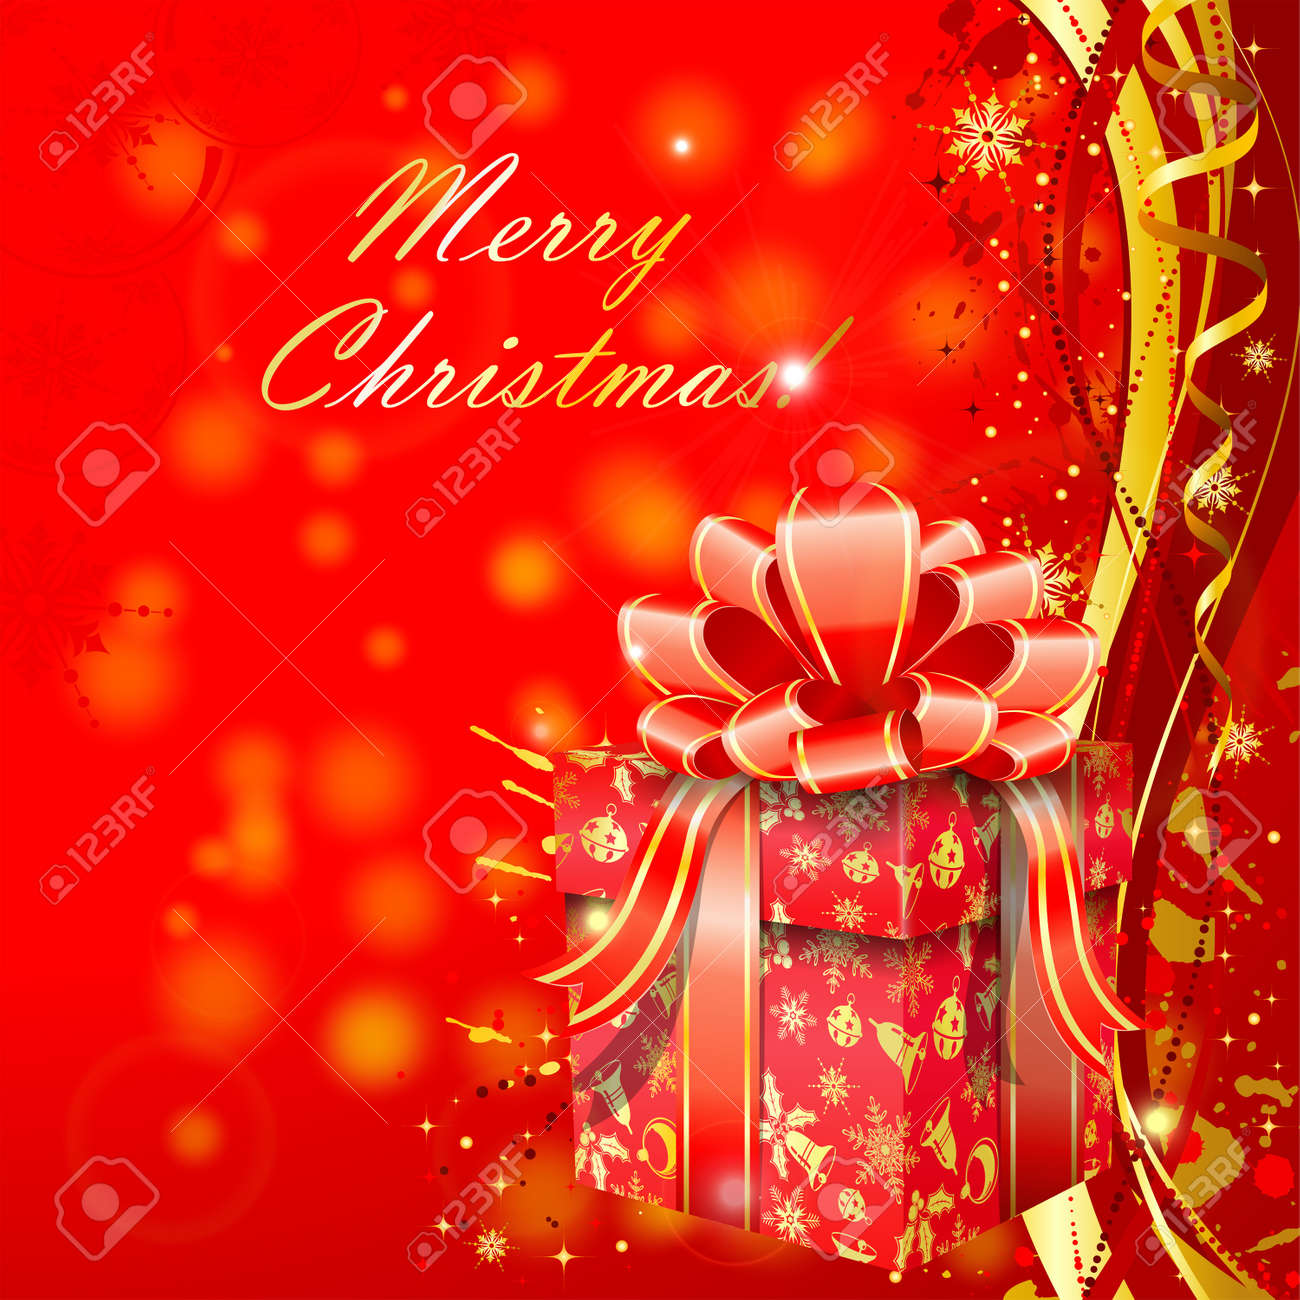 Christmas background with gift box and wave pattern, element for design Stock Vector - 10810079